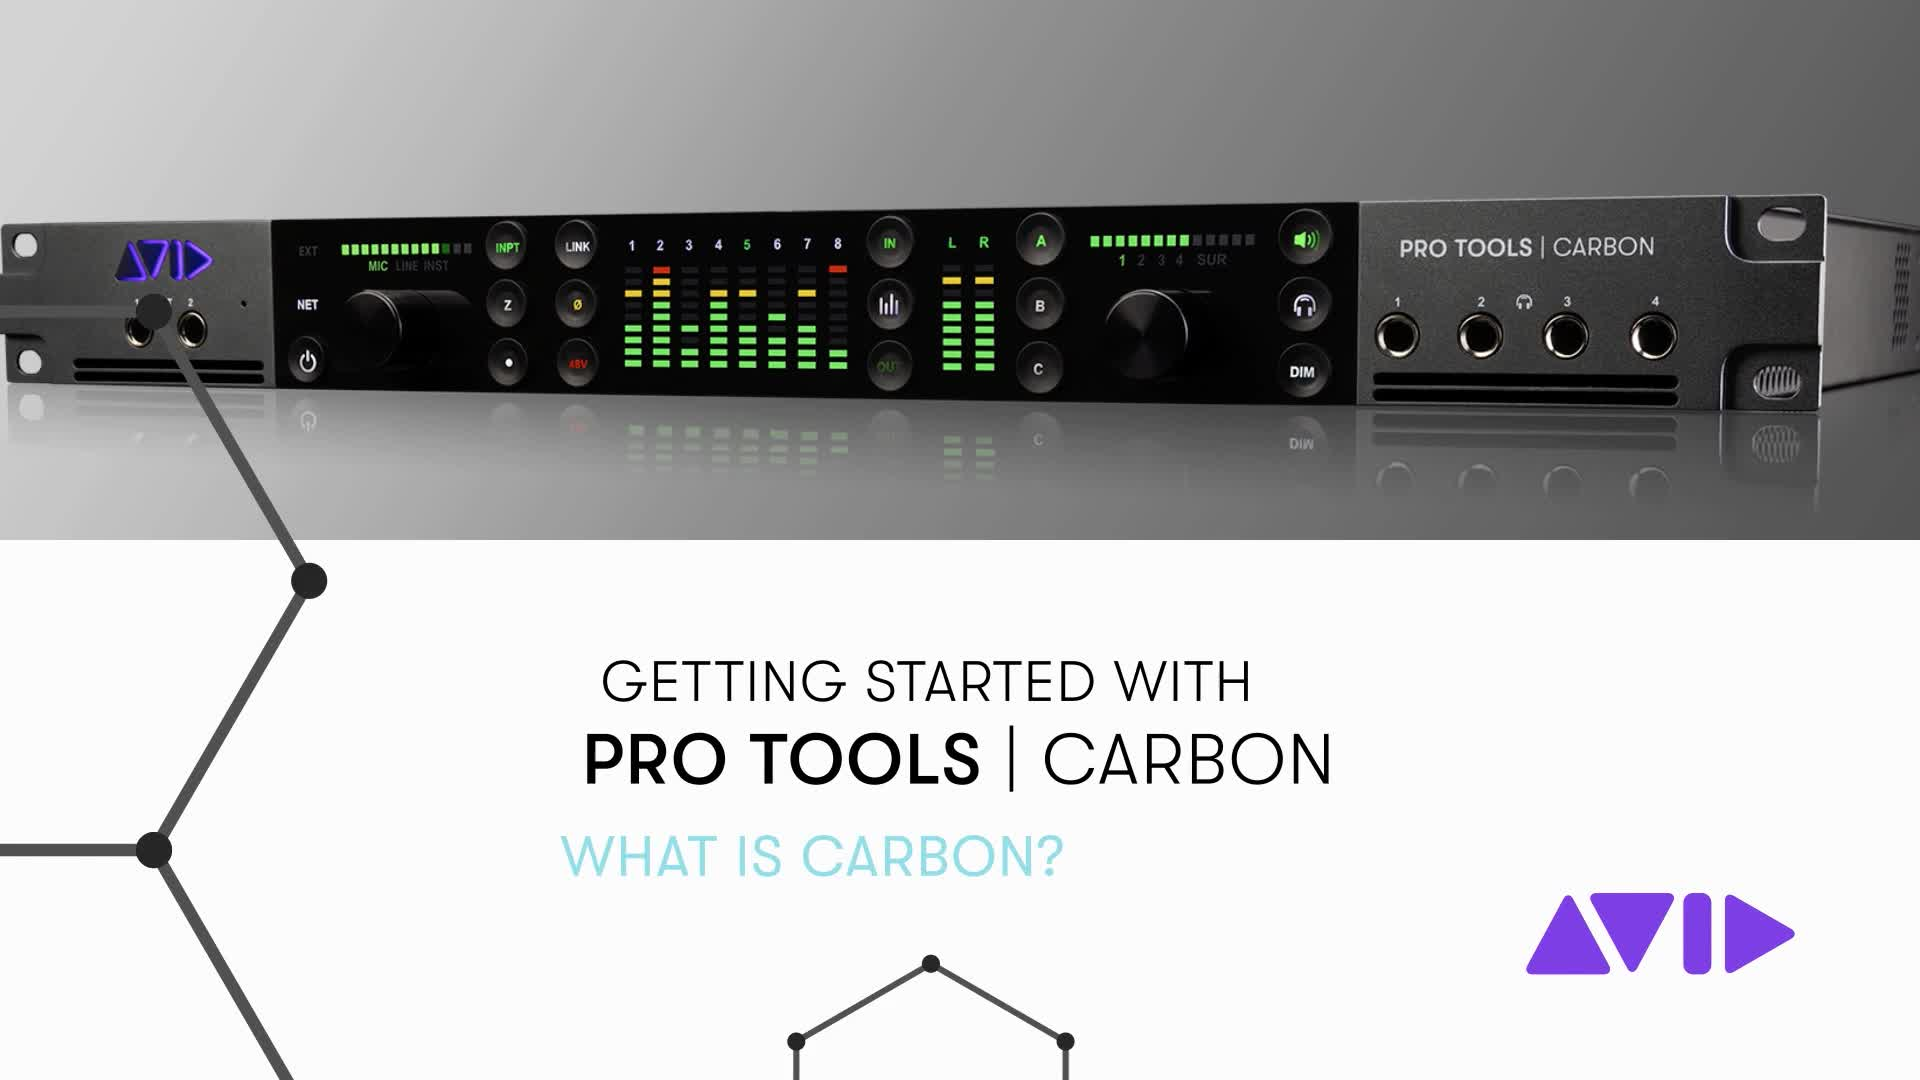 01 Pro Tools Carbon Getting Started - What is Carbon